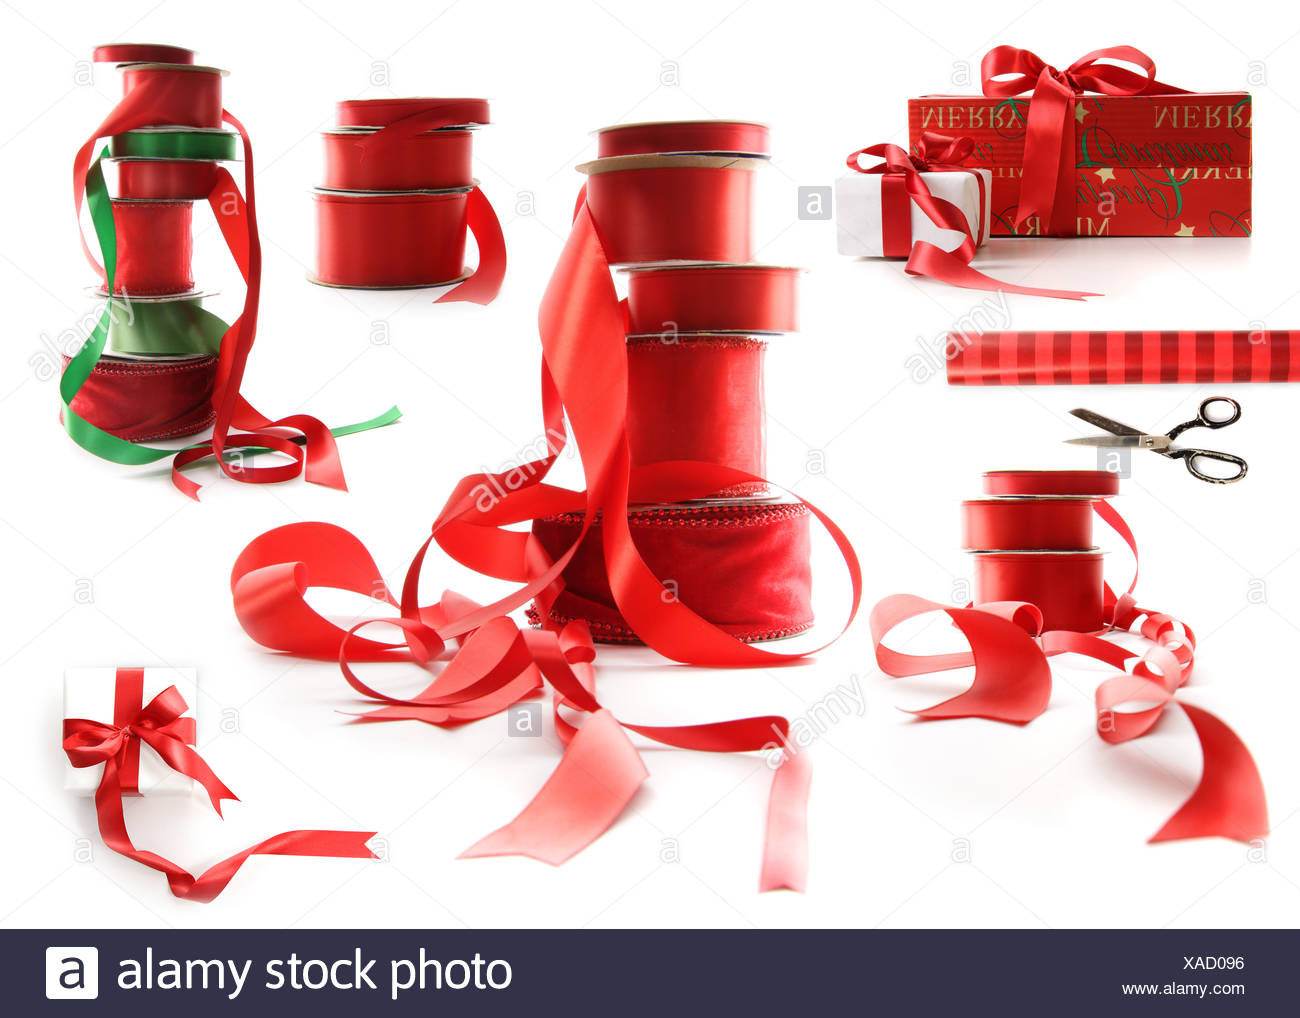 Different sizes of red ribbons and gift wrapped boxes on white background - Stock Image